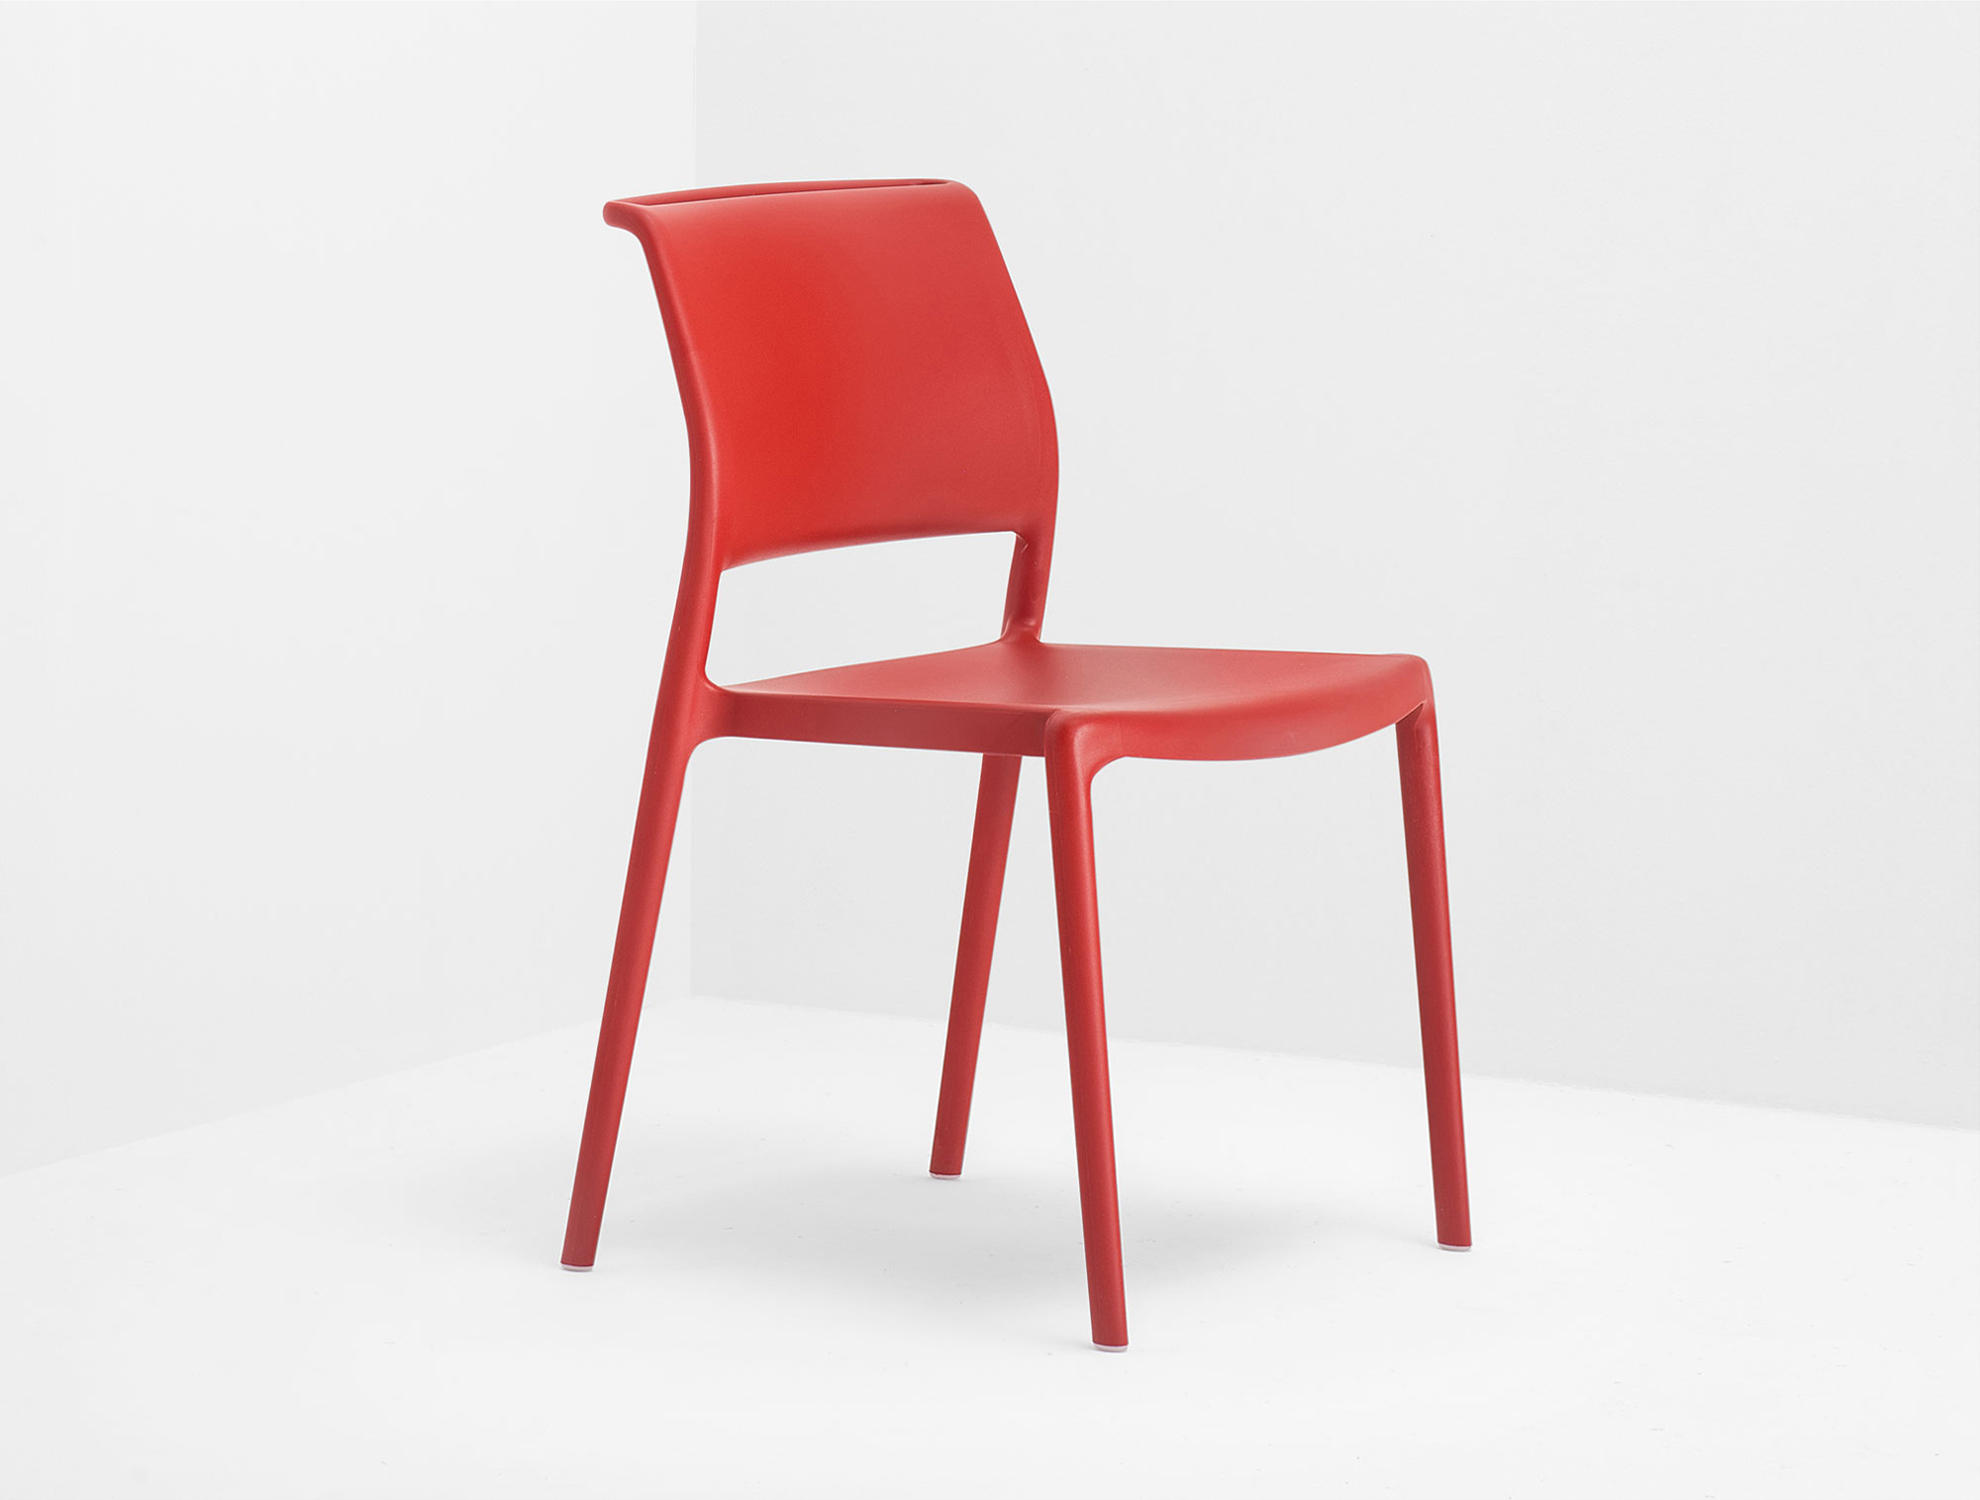 Ara 310 By PEDRALI | Chairs ...